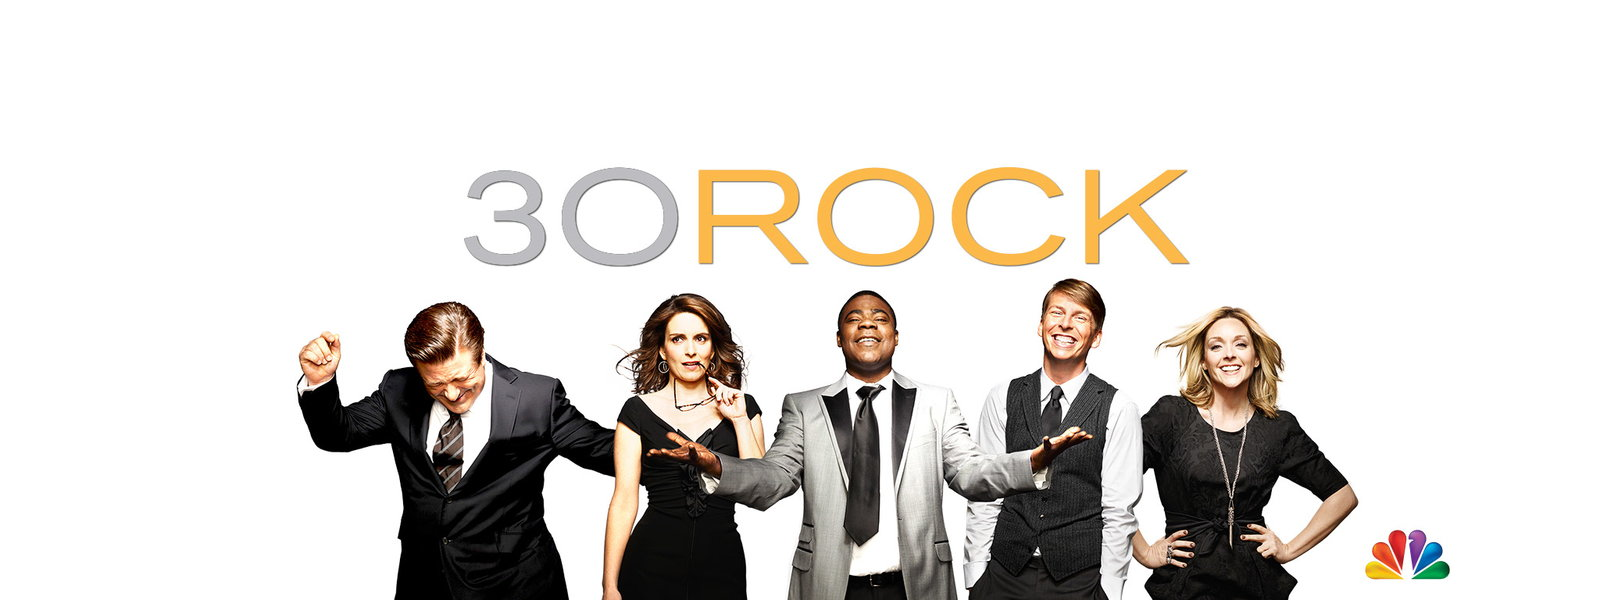 Watch 30 Rock Online | Stream on Hulu